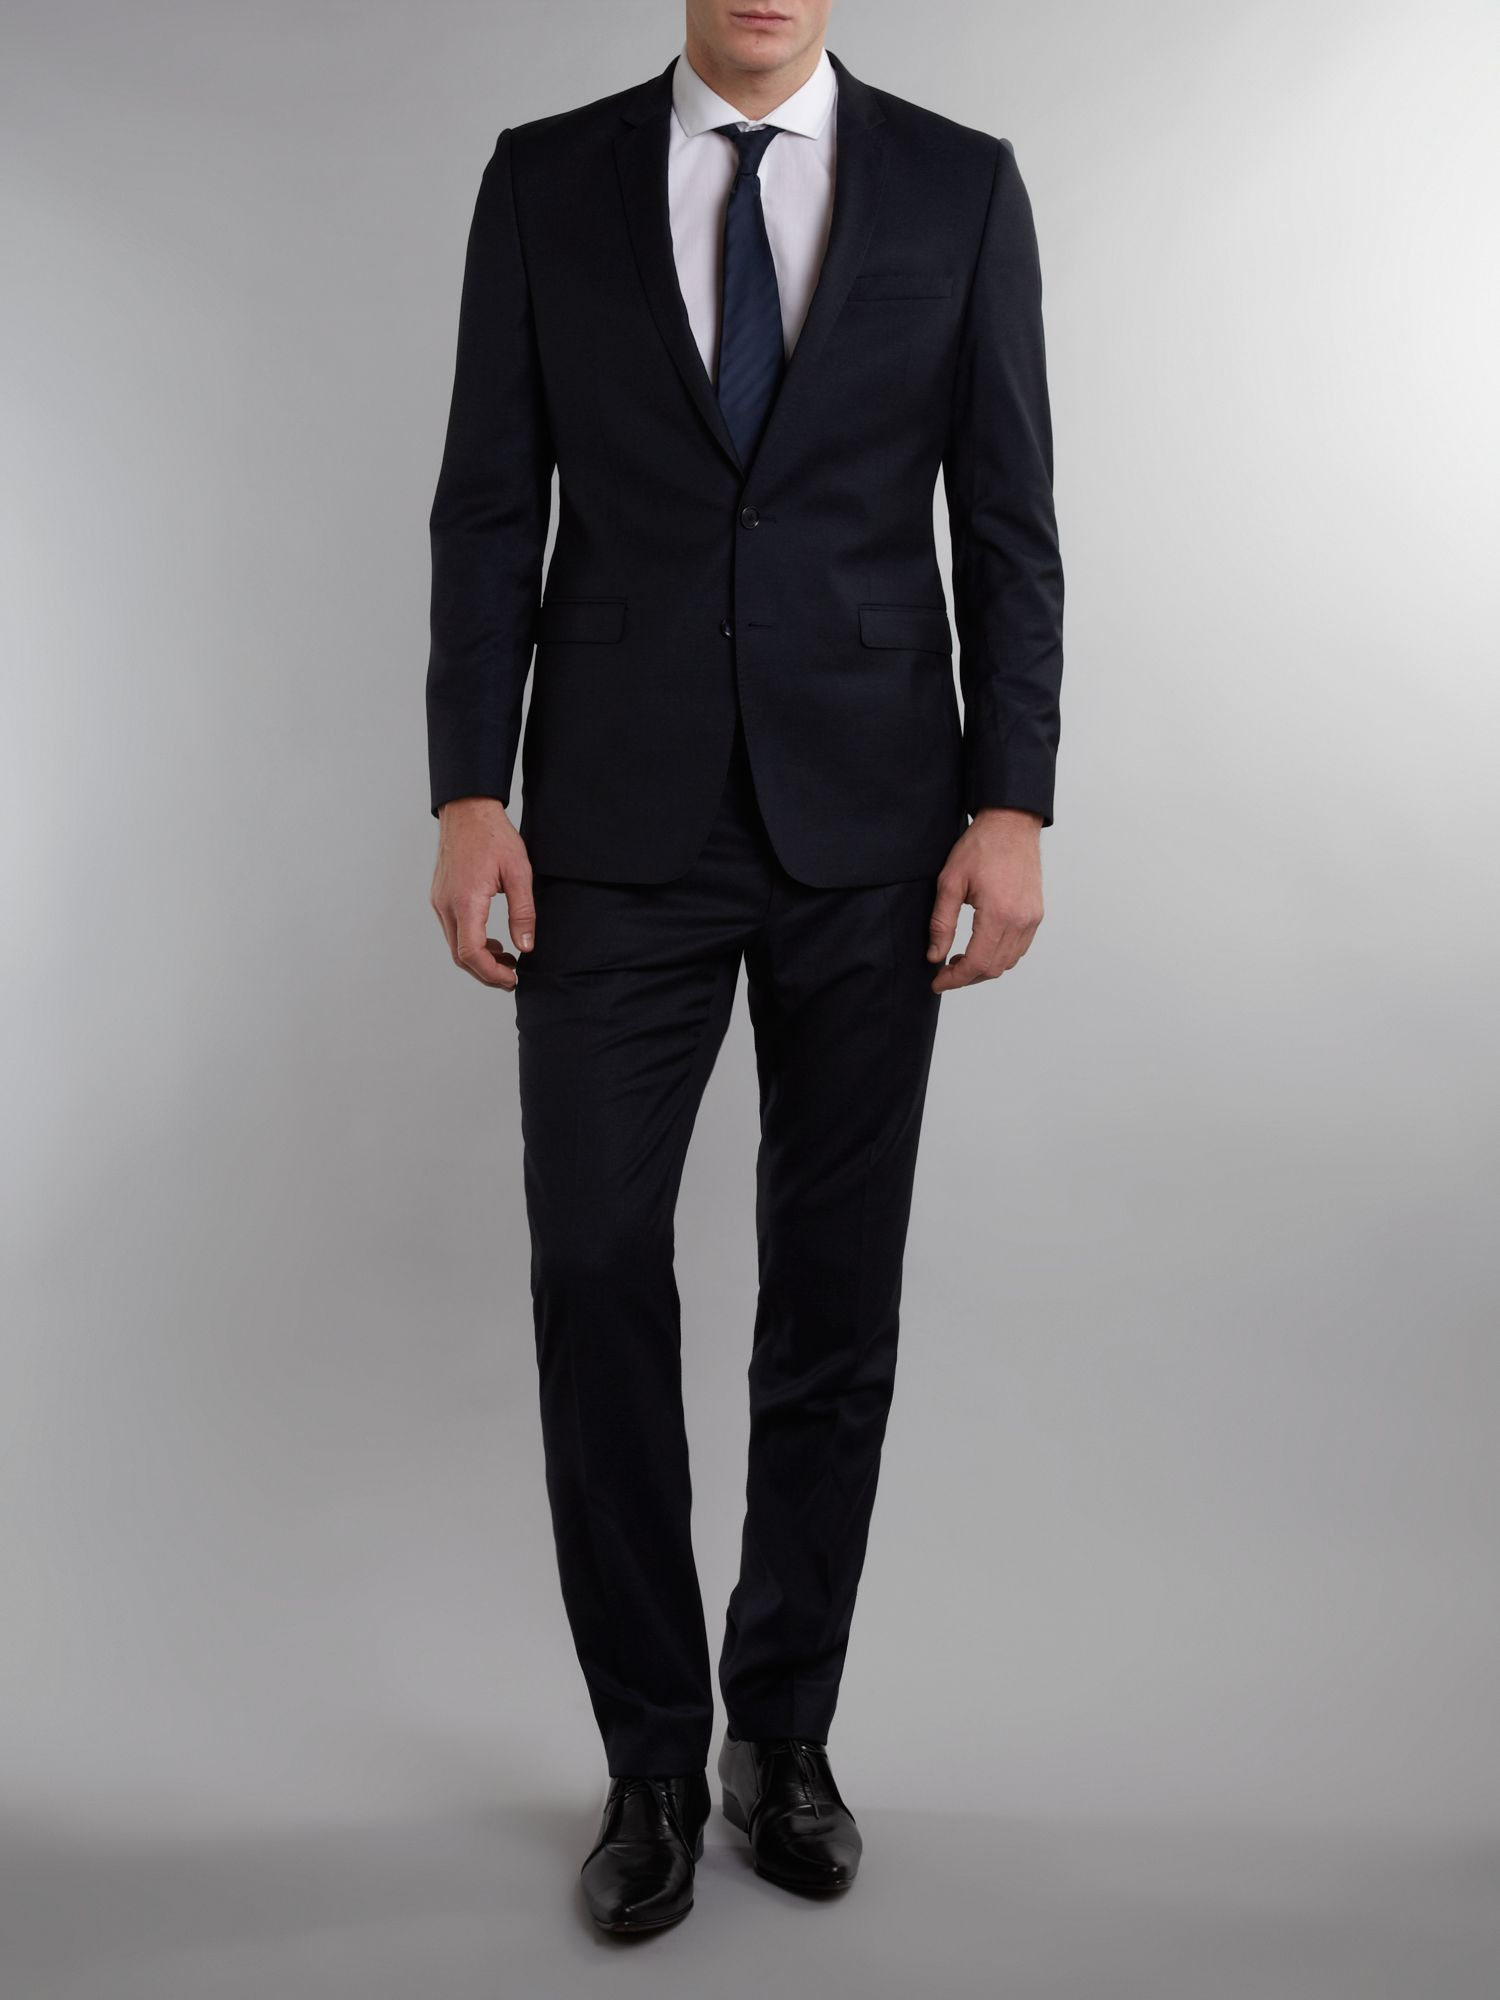 Single breasted flecked wool formal suit